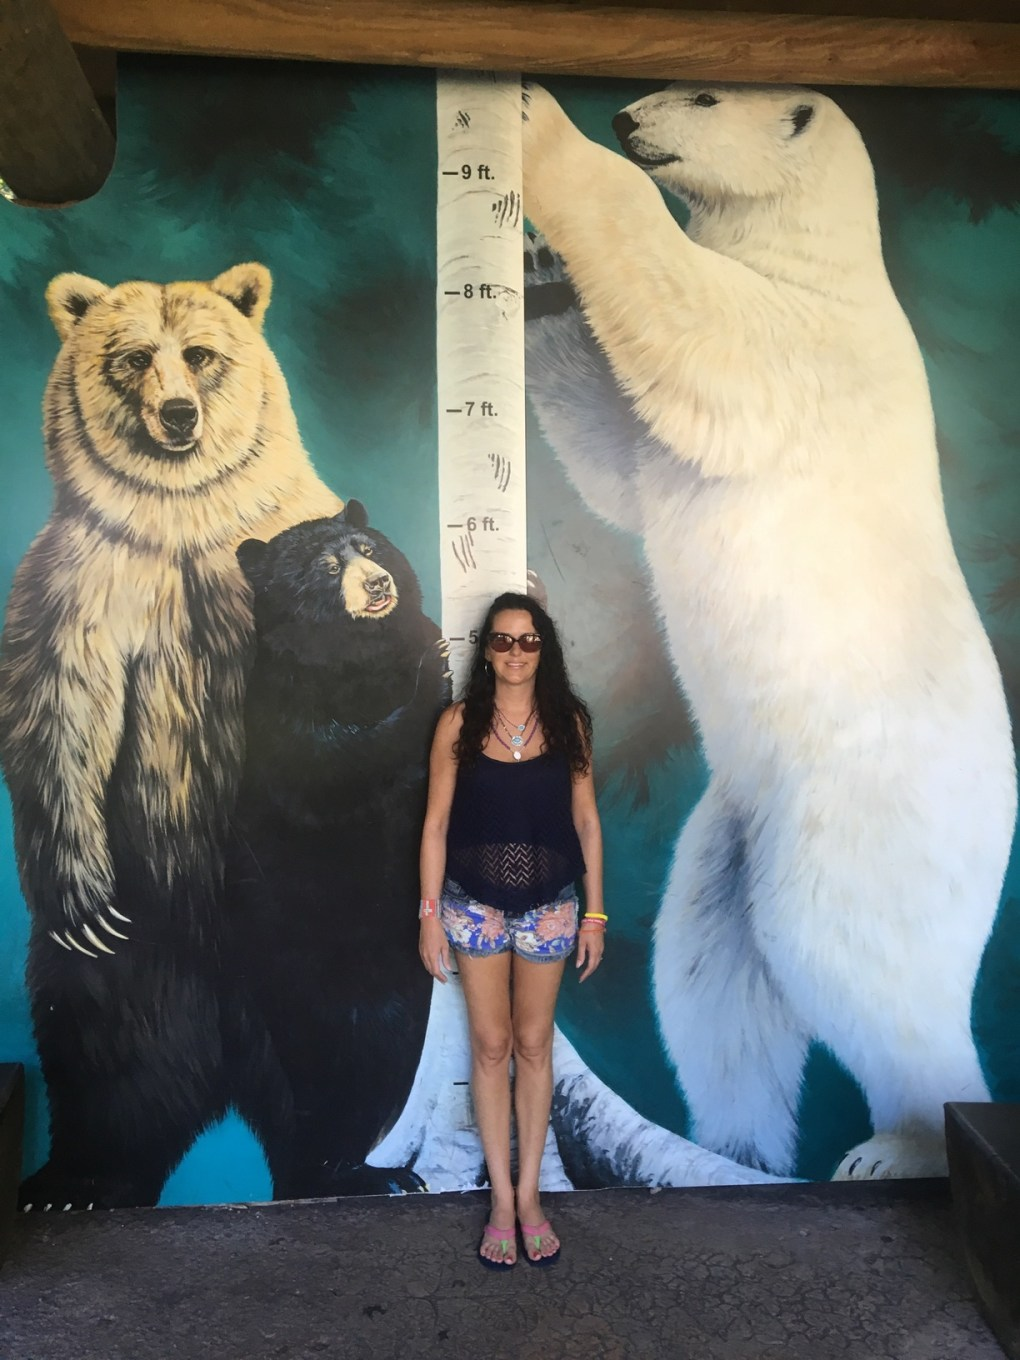 How Big is a Polar Bear - Polar Bear Size